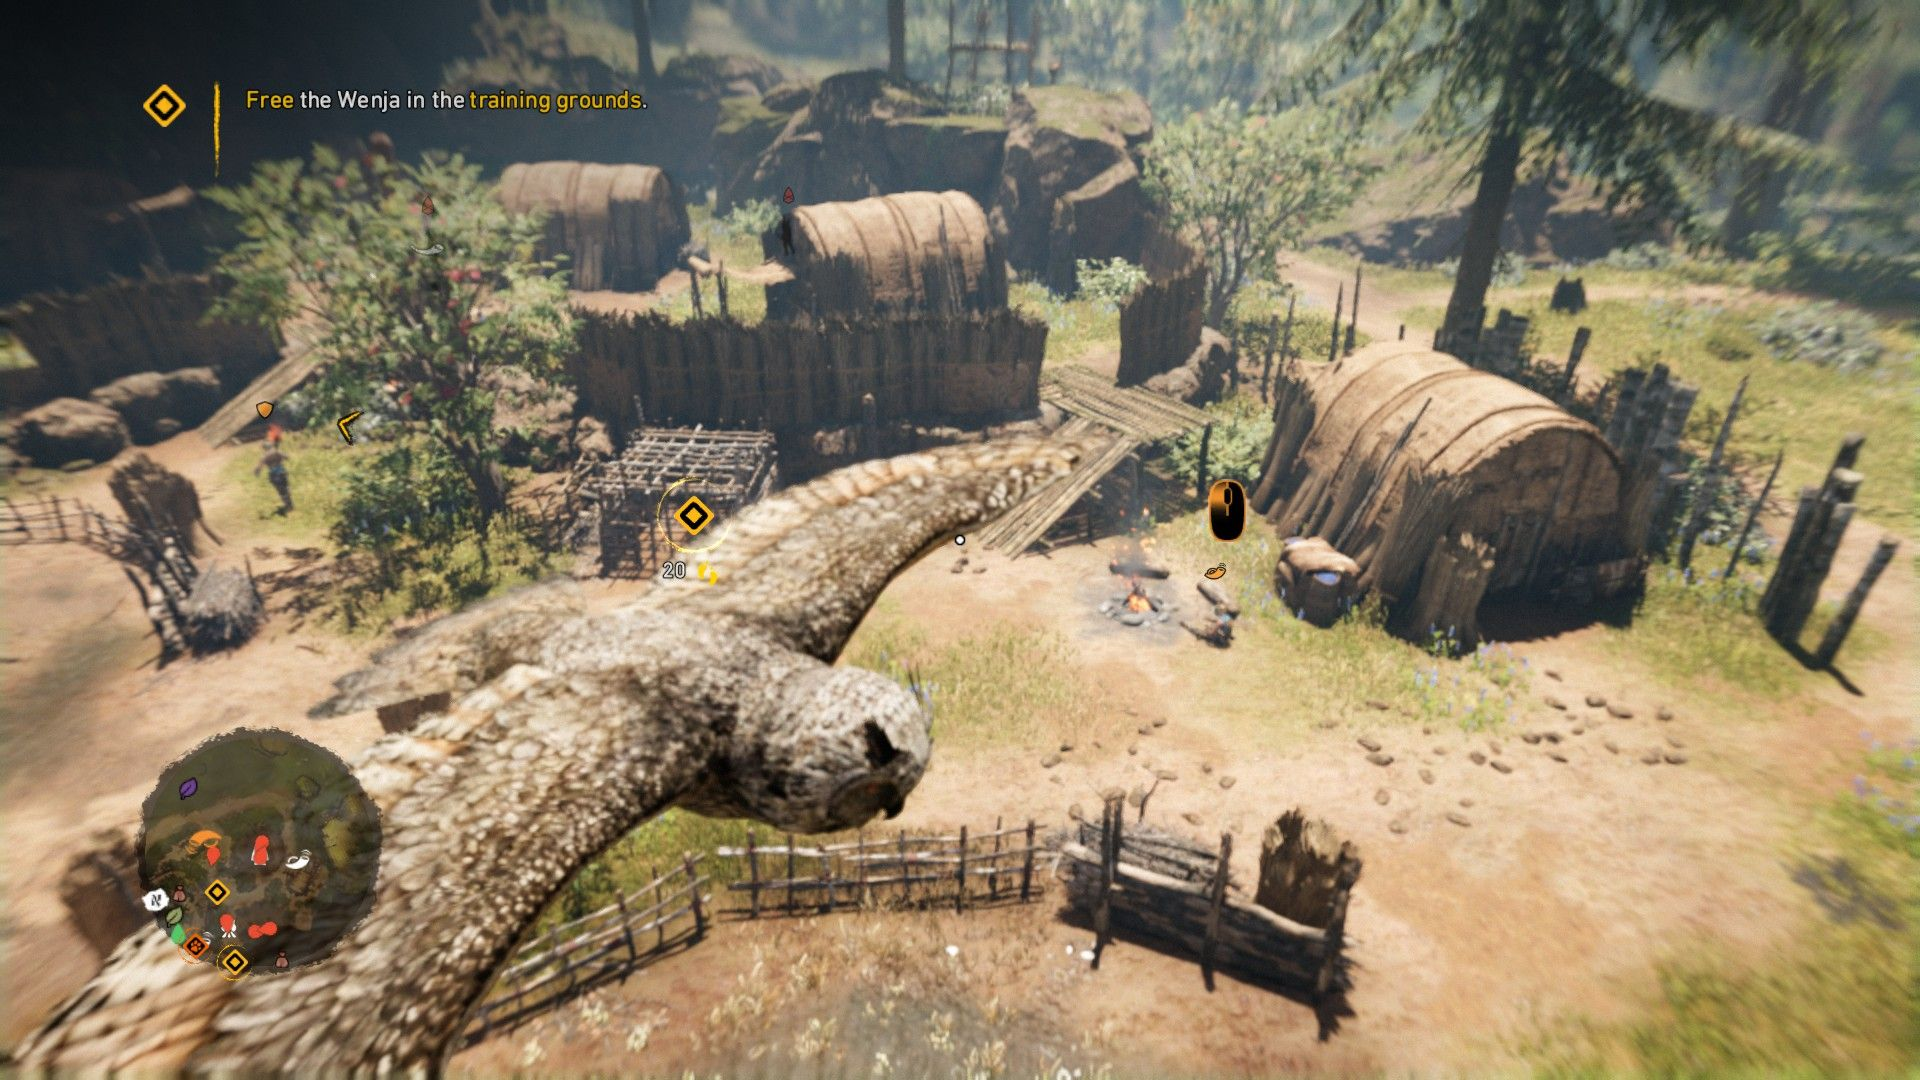 Far Cry Primal Screenshots Image 18428 New Game Network